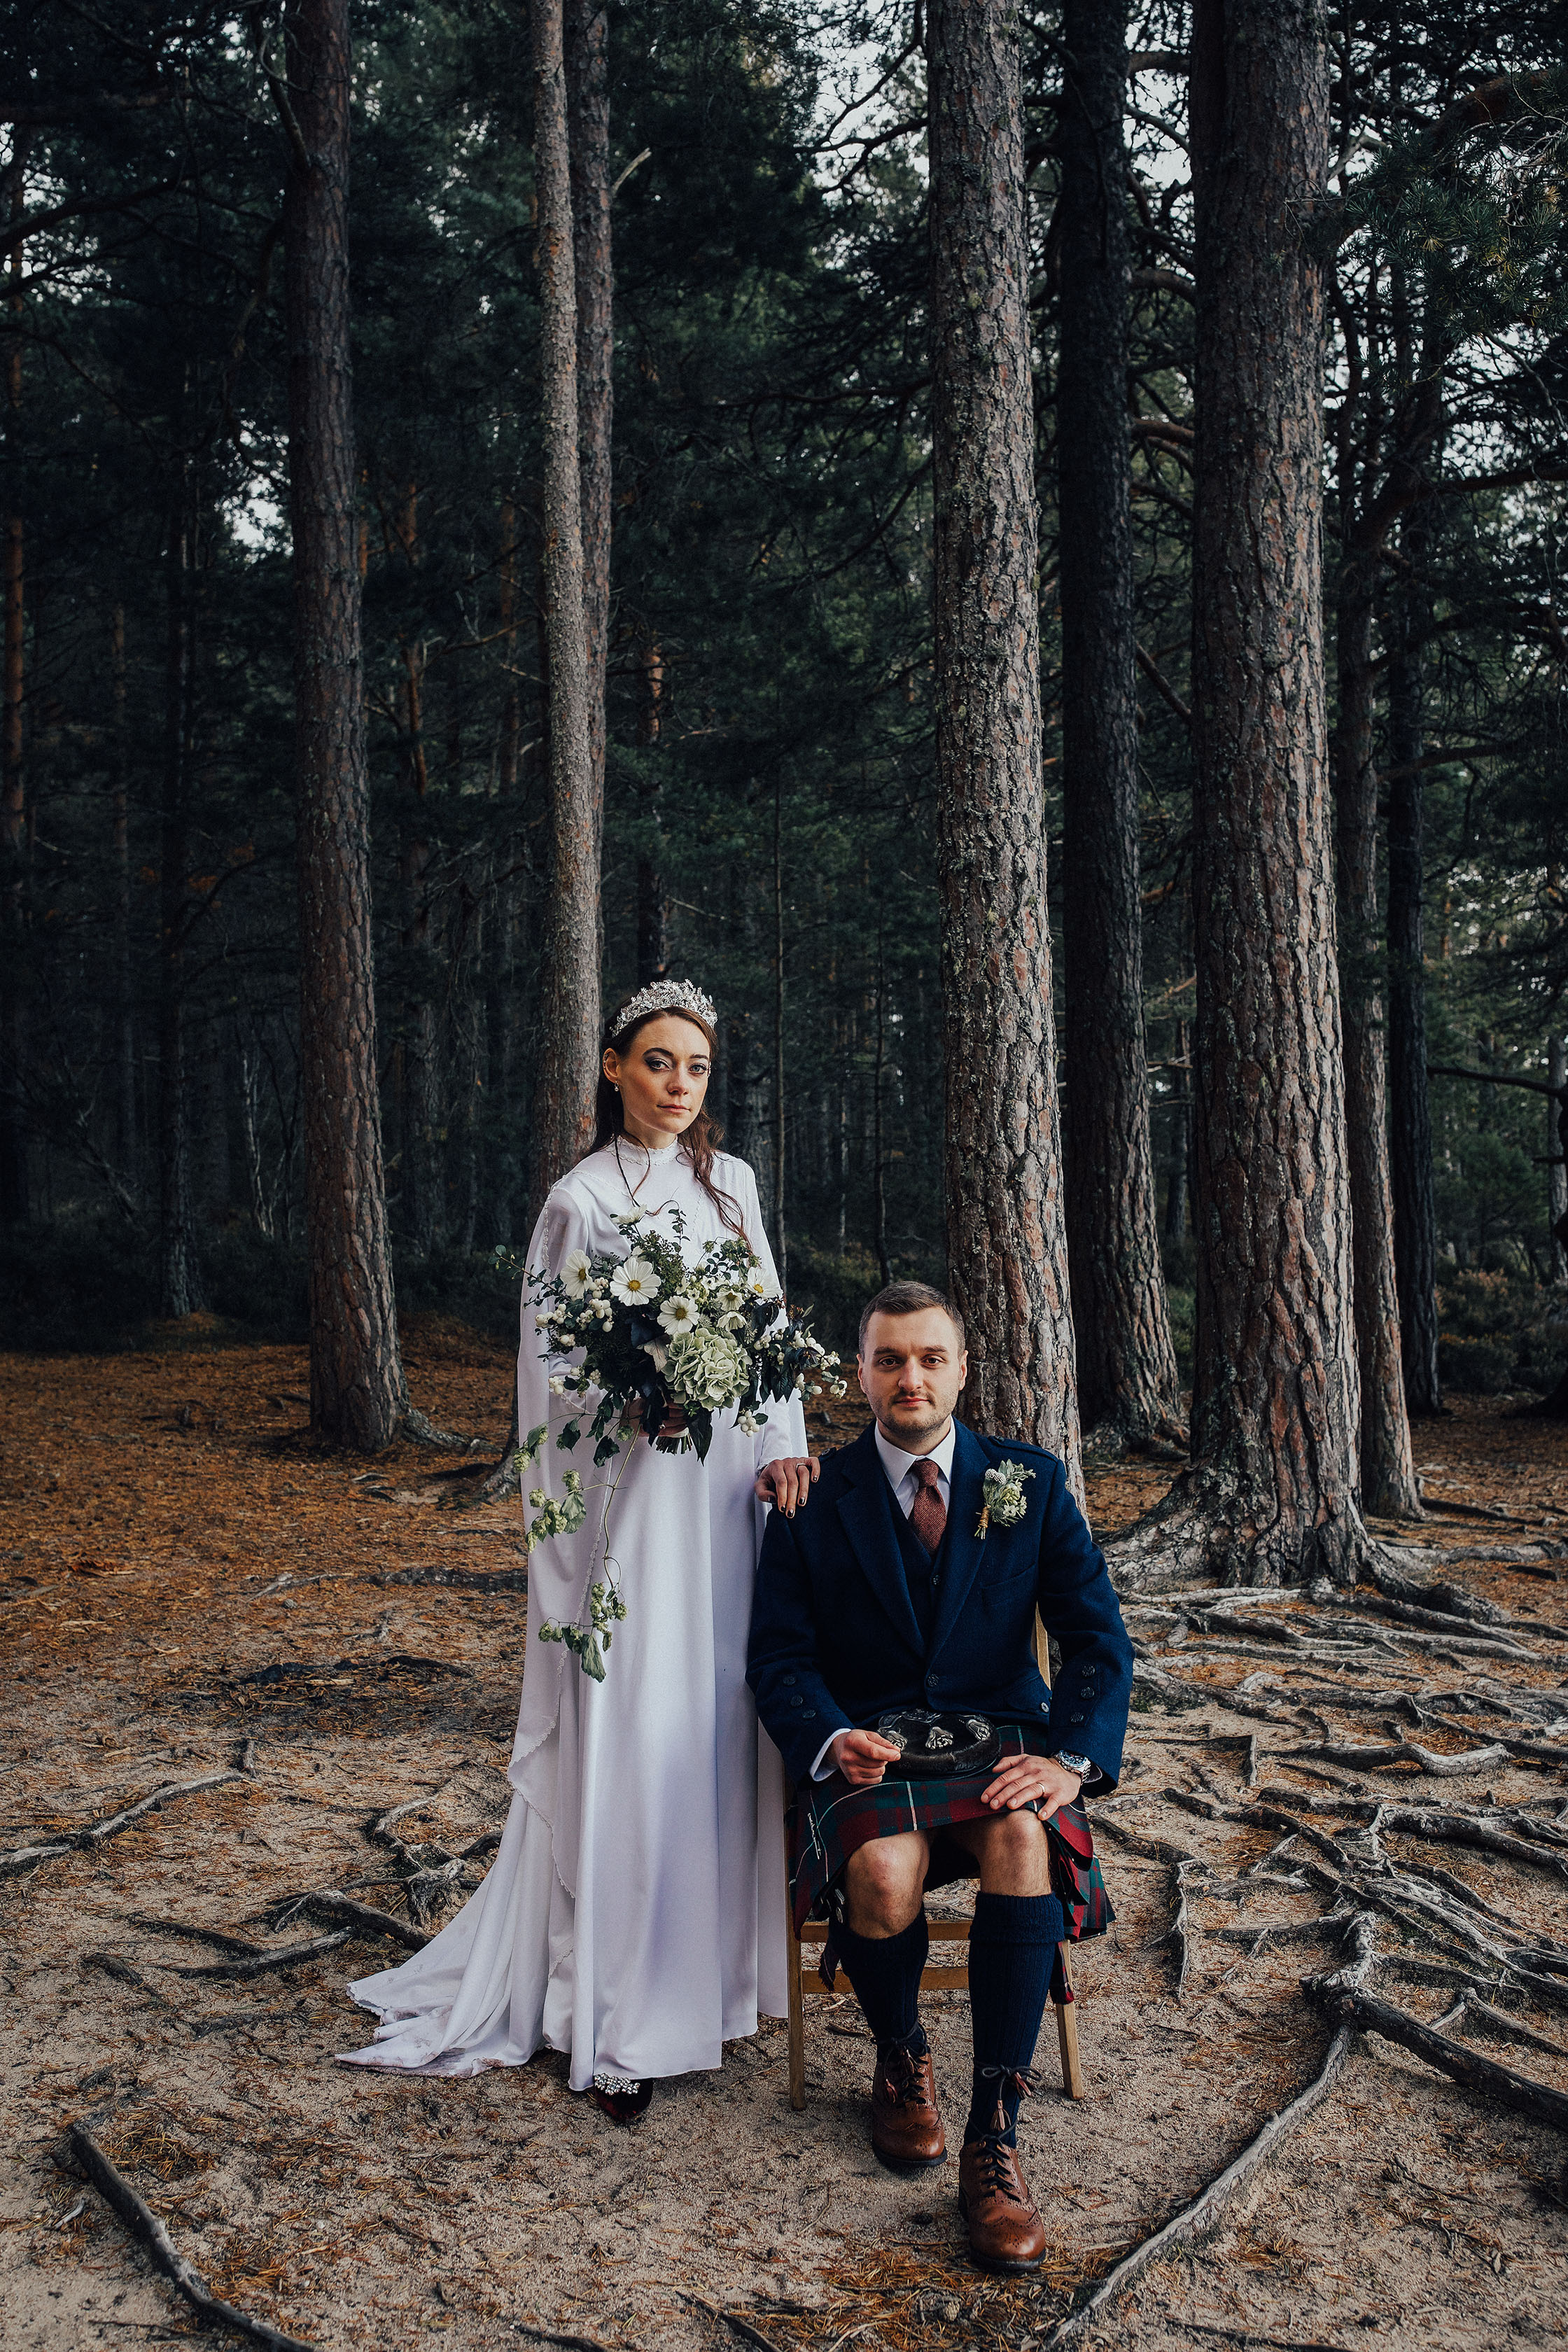 PJ_PHILLIPS_PHOTOGRAPHY_2018_SCOTLAND_WEDDING_PHOTOOGRAPHER_132.jpg